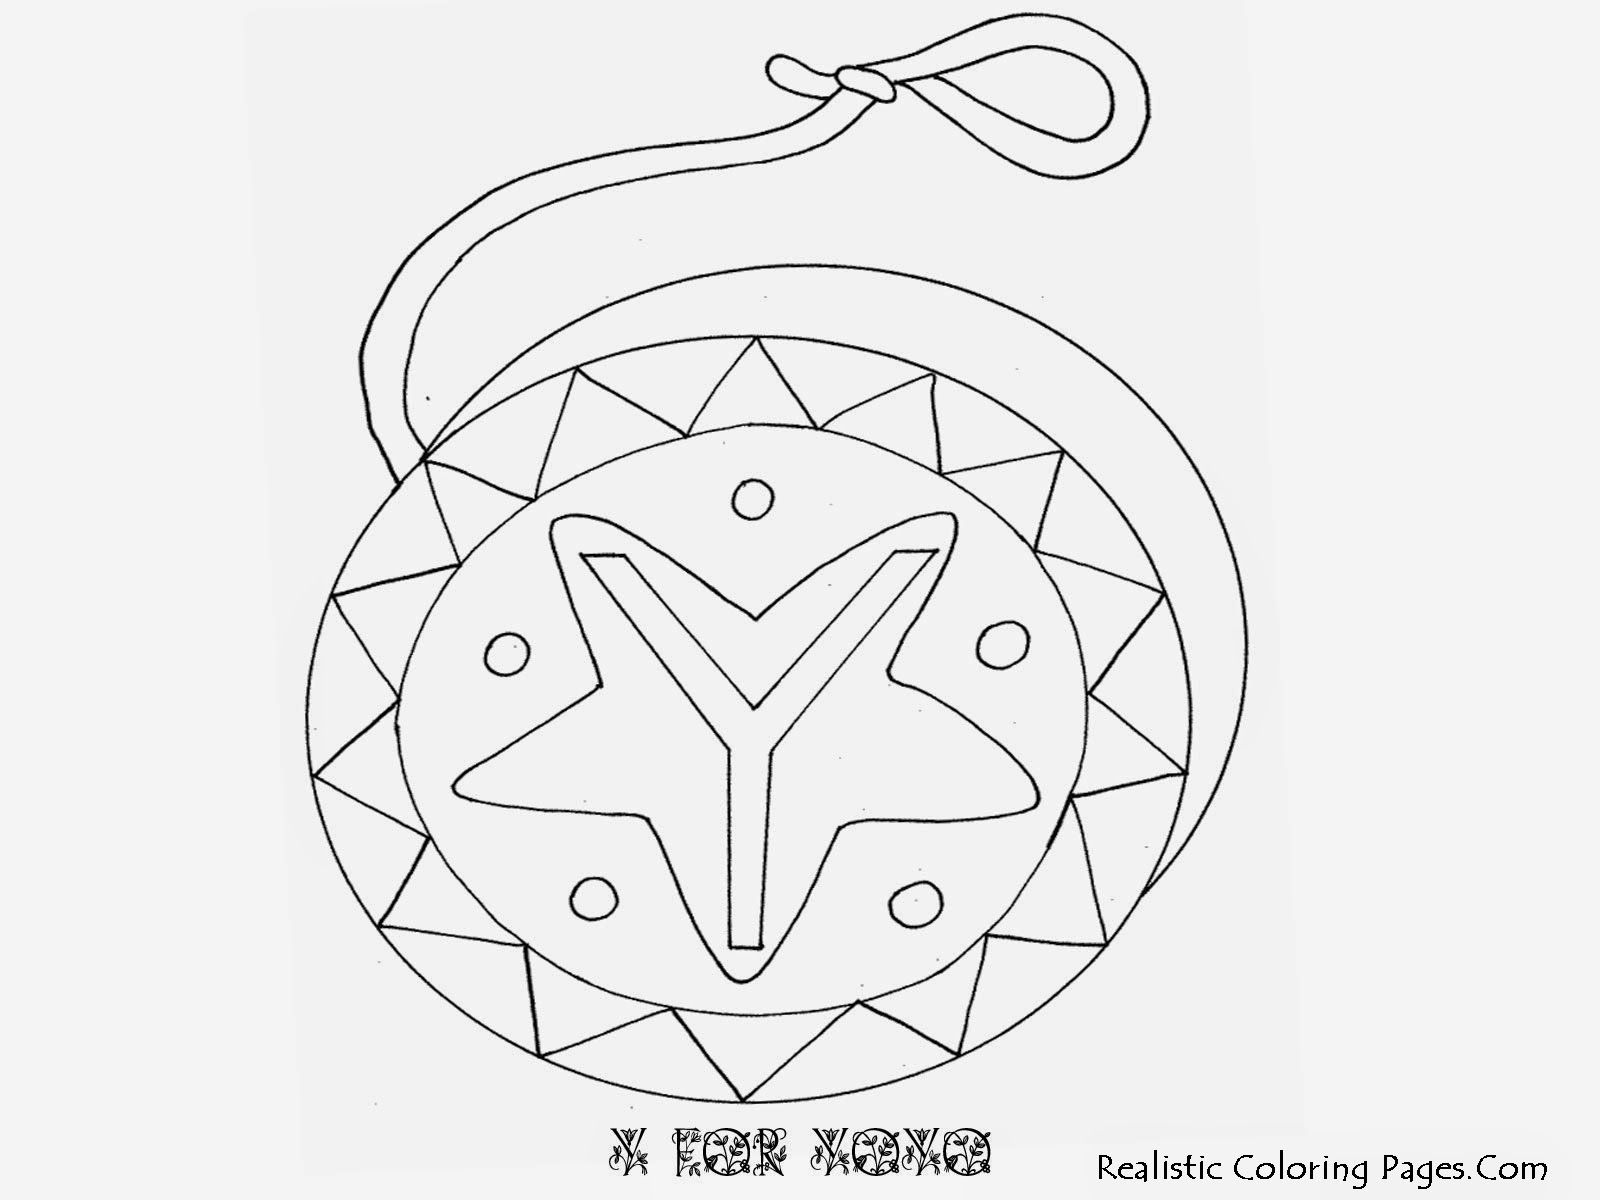 Alphabet Coloring Pages Y FOR YOYO